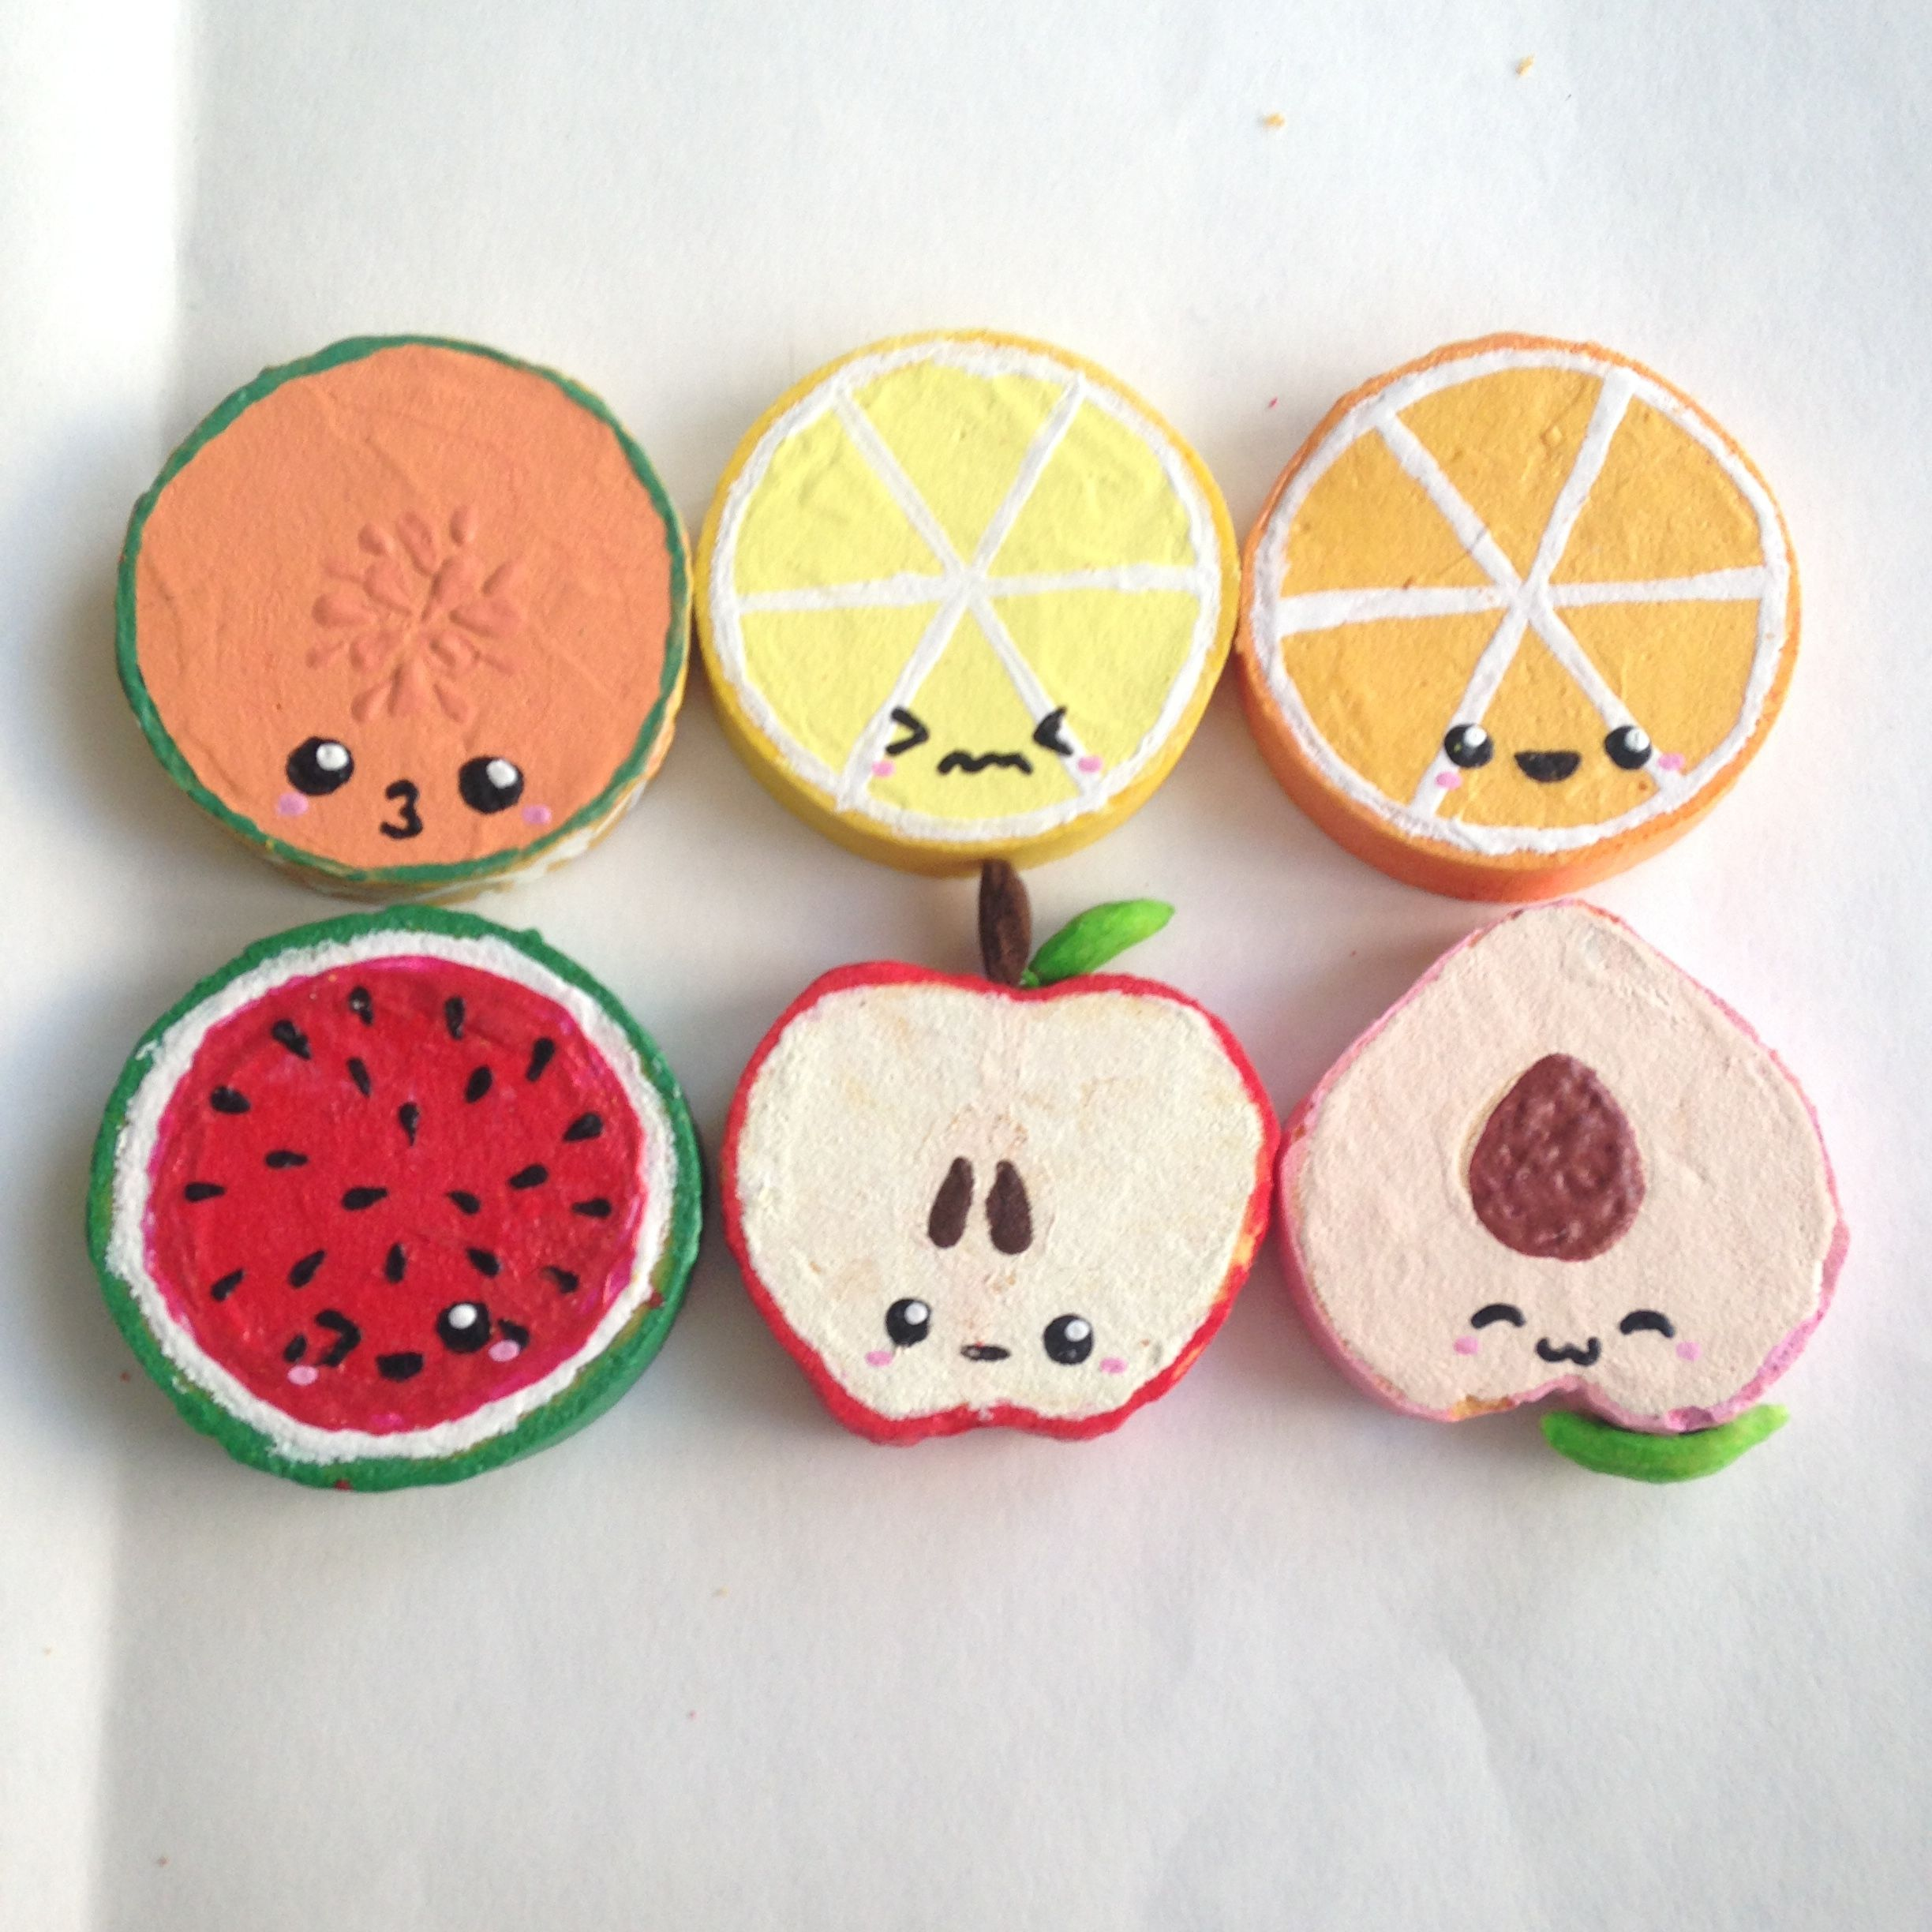 Squishy Bun Diy : Homemade Fruit Flatback Squishy Set Squishys Pinterest Homemade, Squishies and Kawaii